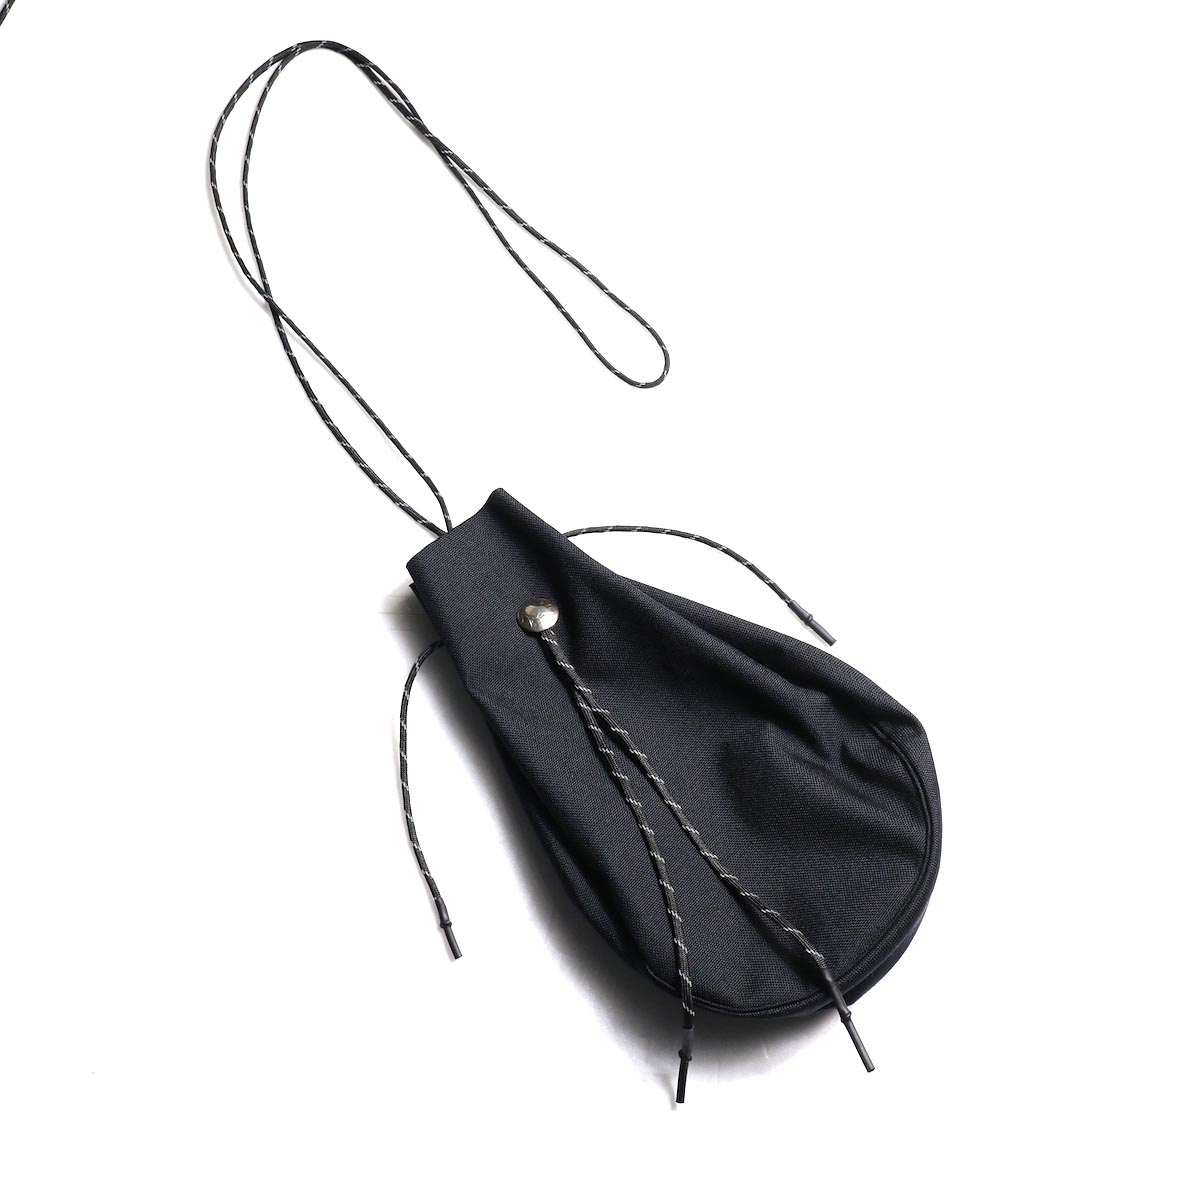 吉岡衣料店 / drawstring bag -L-. w/concho. (Black)正面